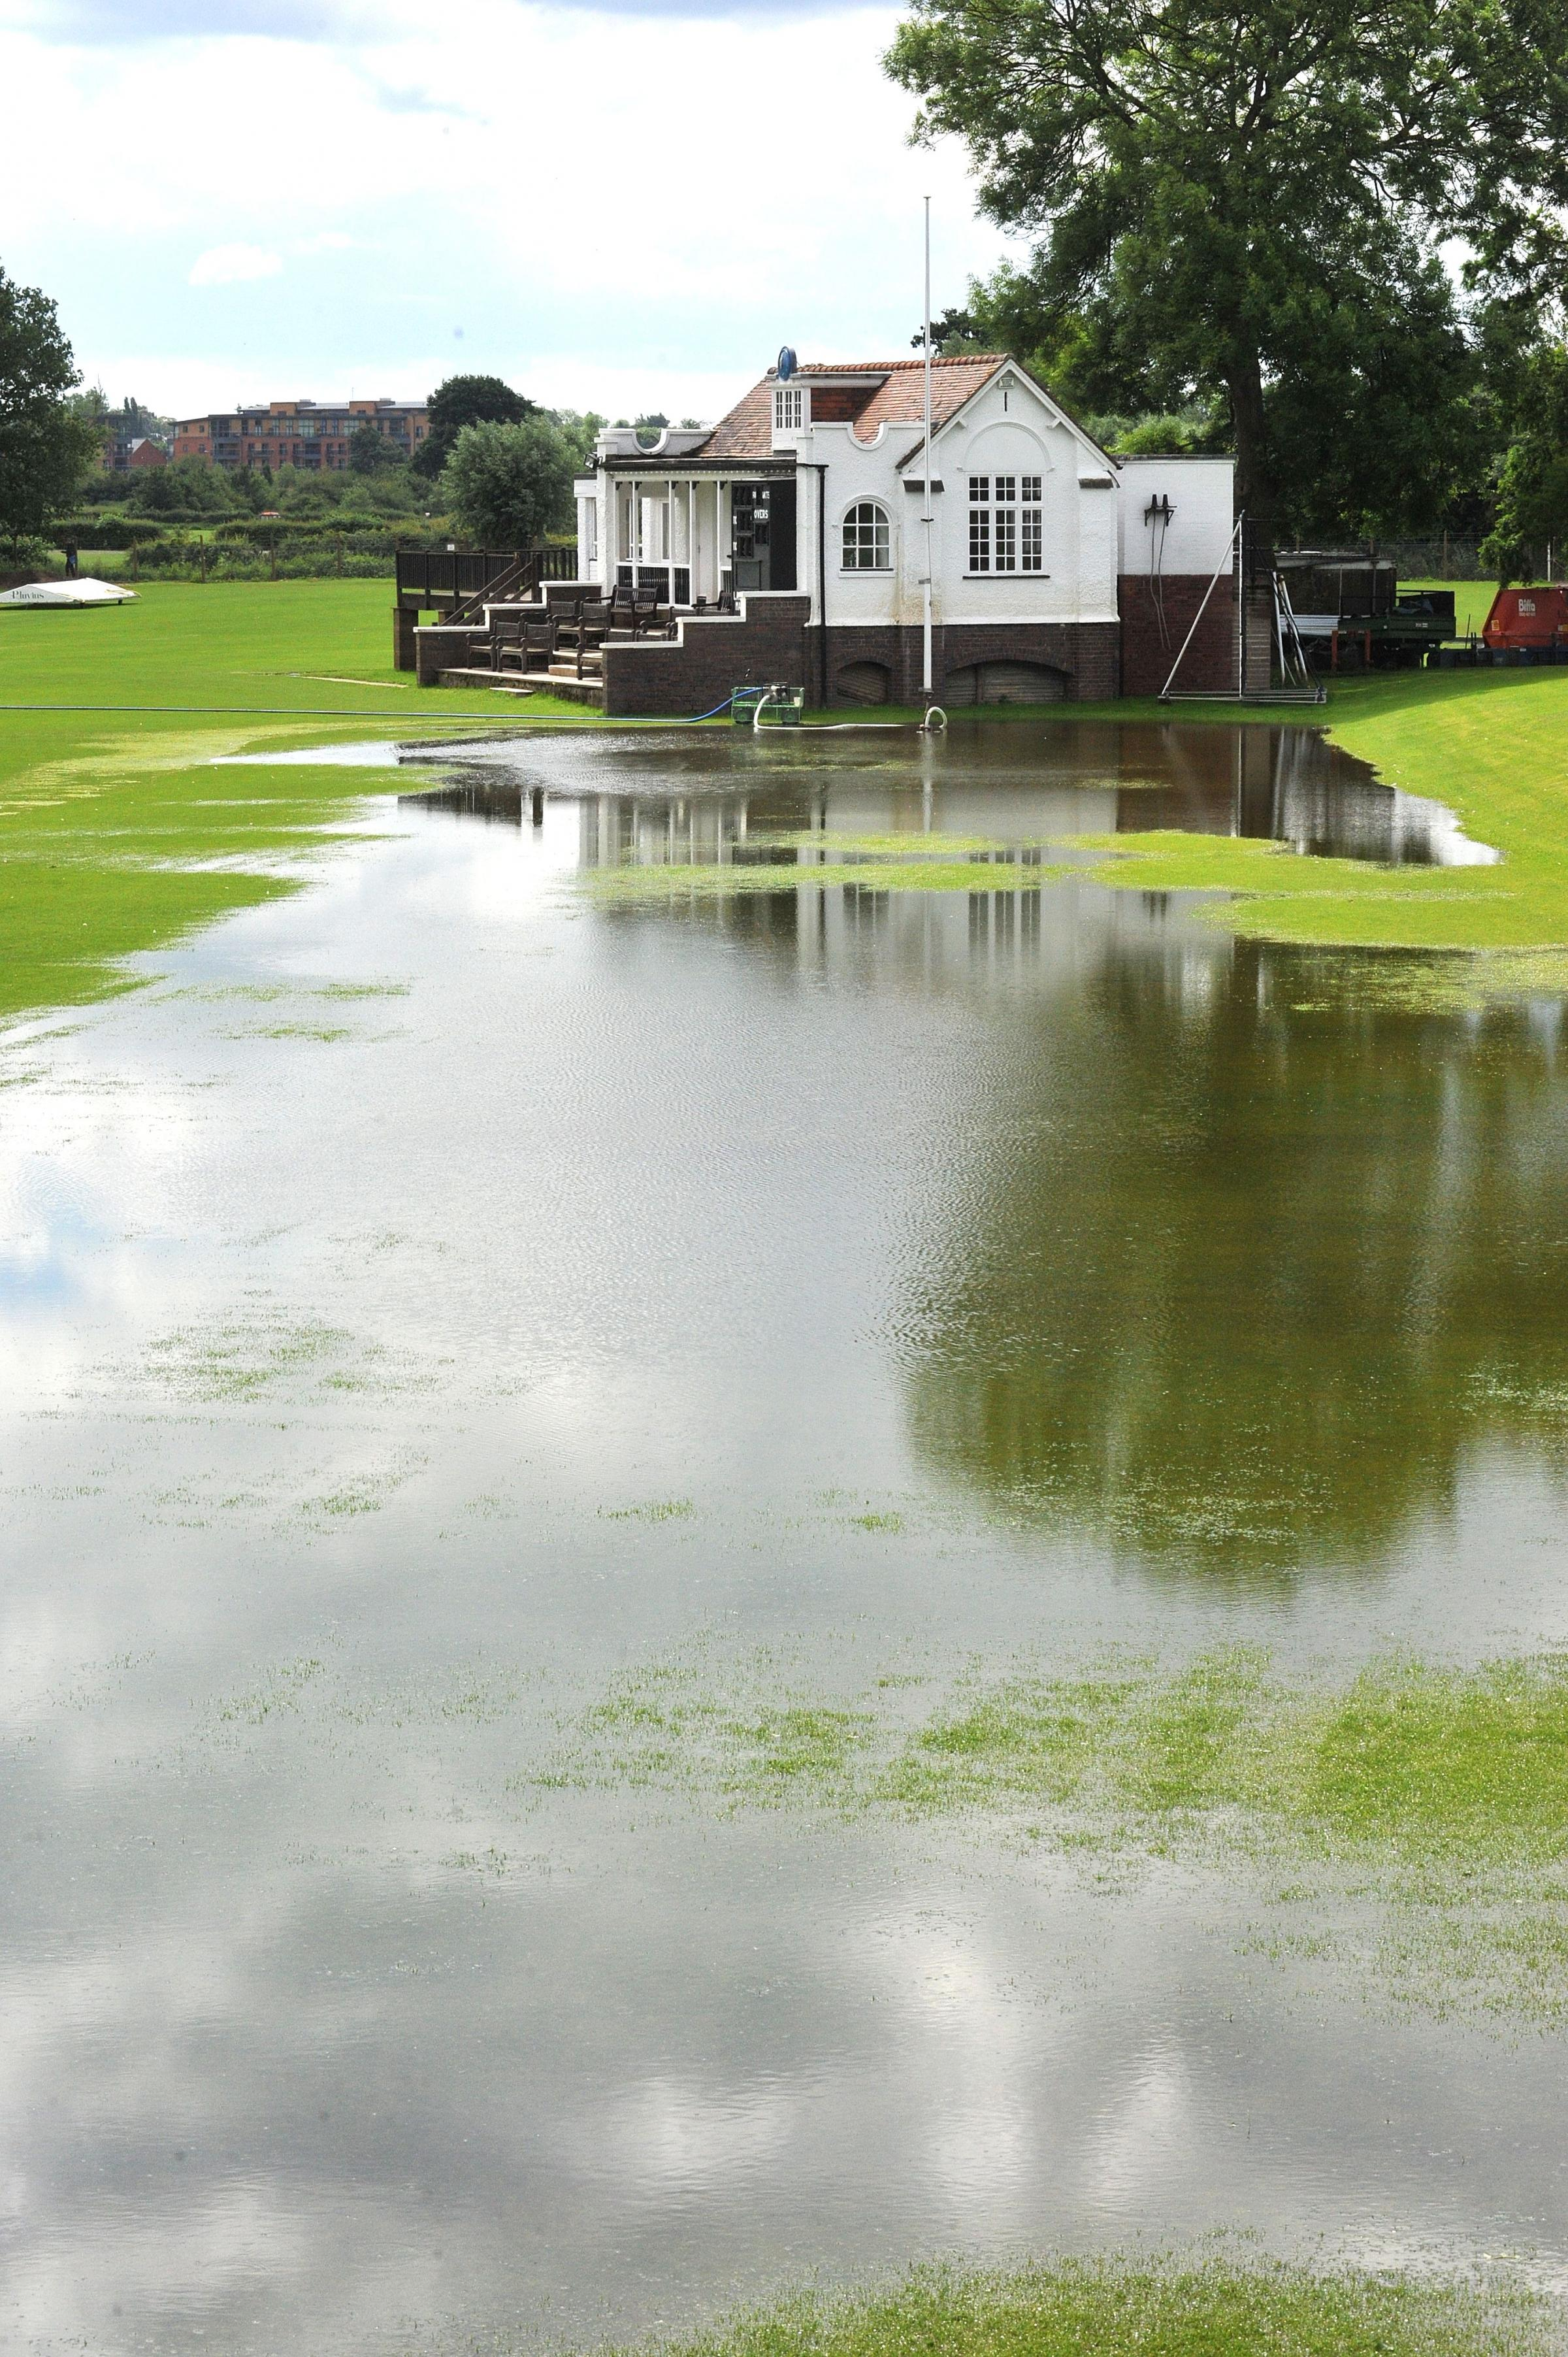 Flooding returns to New Road